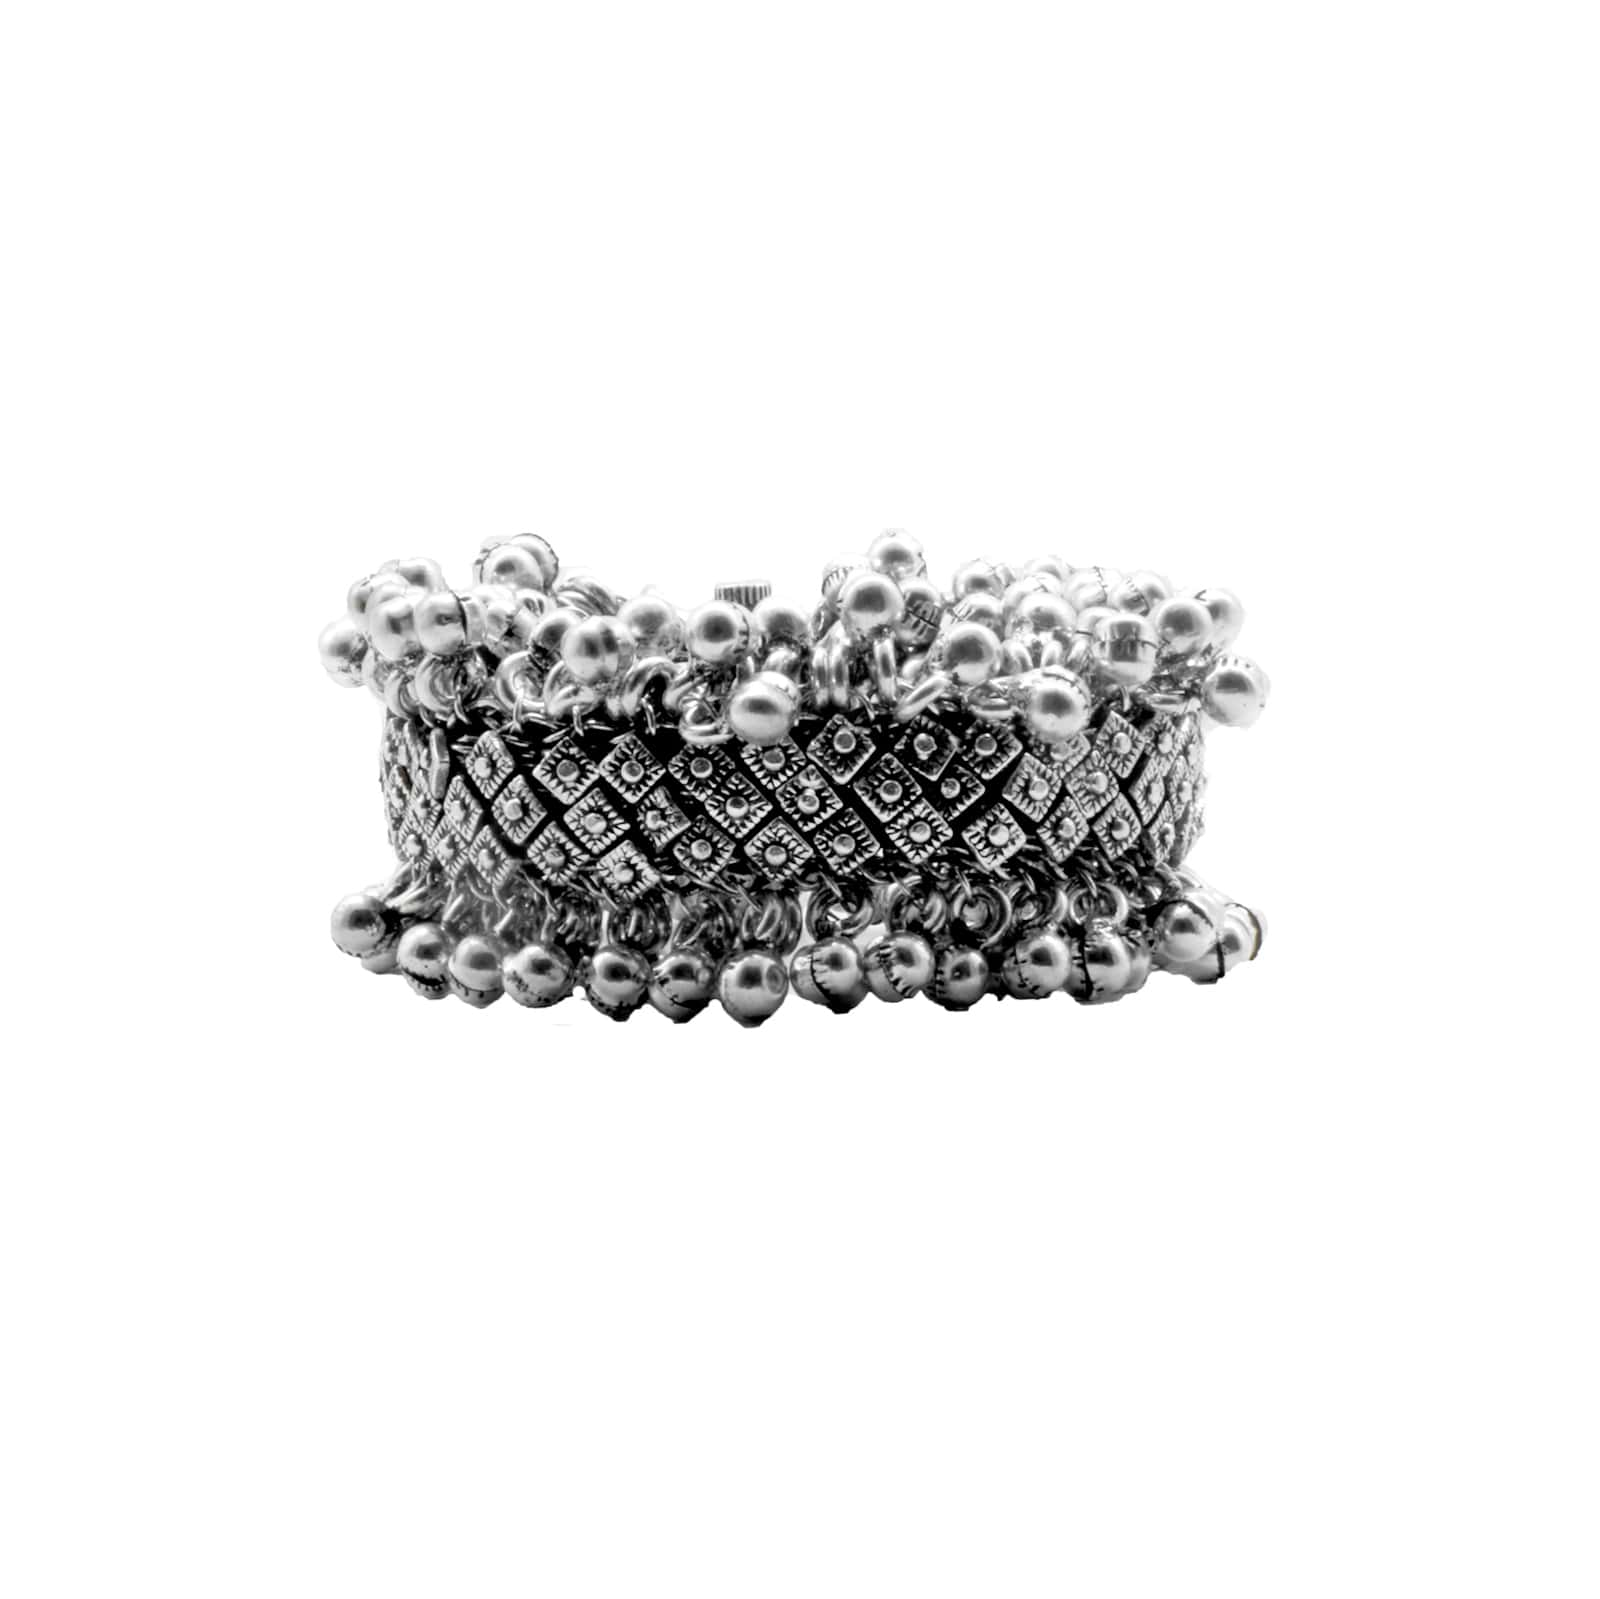 Teejh Geeta Rawa Work Silver Oxidized Ghungroo Bangle